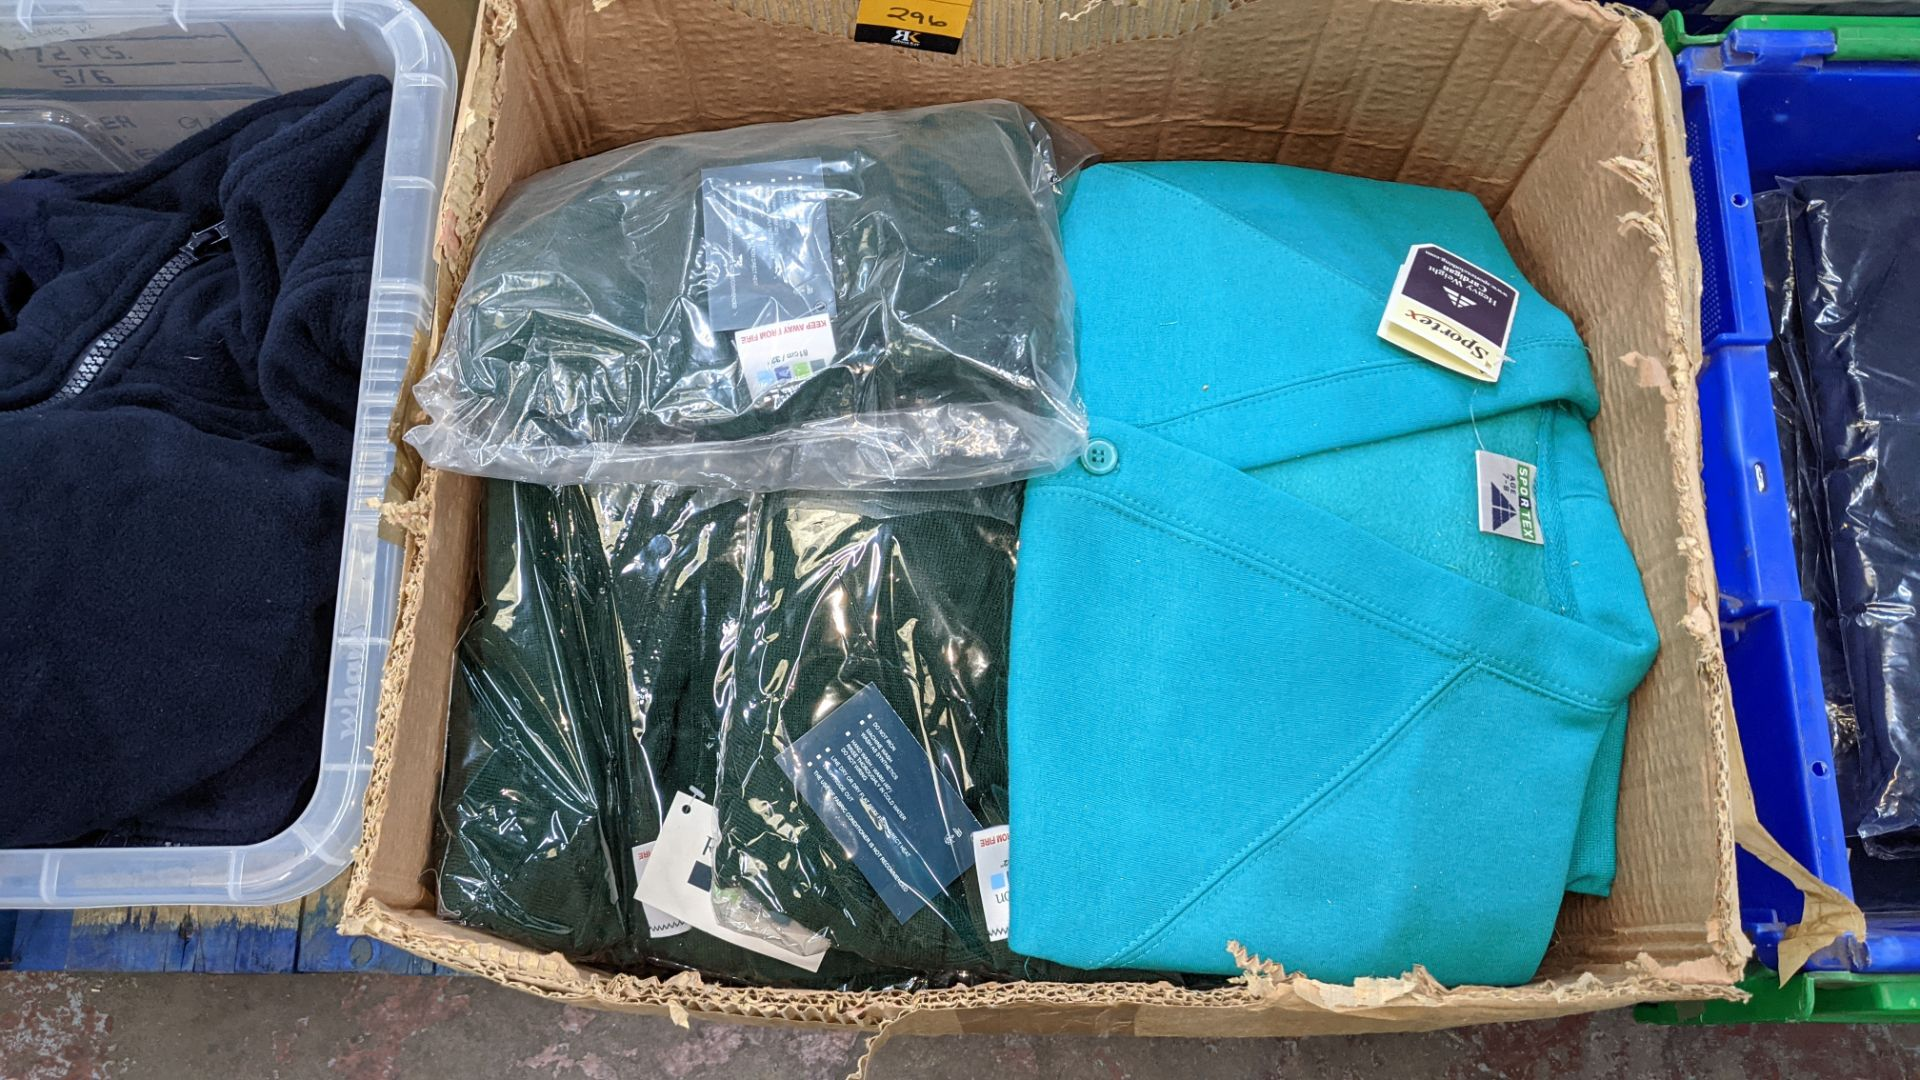 Approx 18 off Rowlinson children's green button up sweat tops - 1 large box - Image 3 of 6